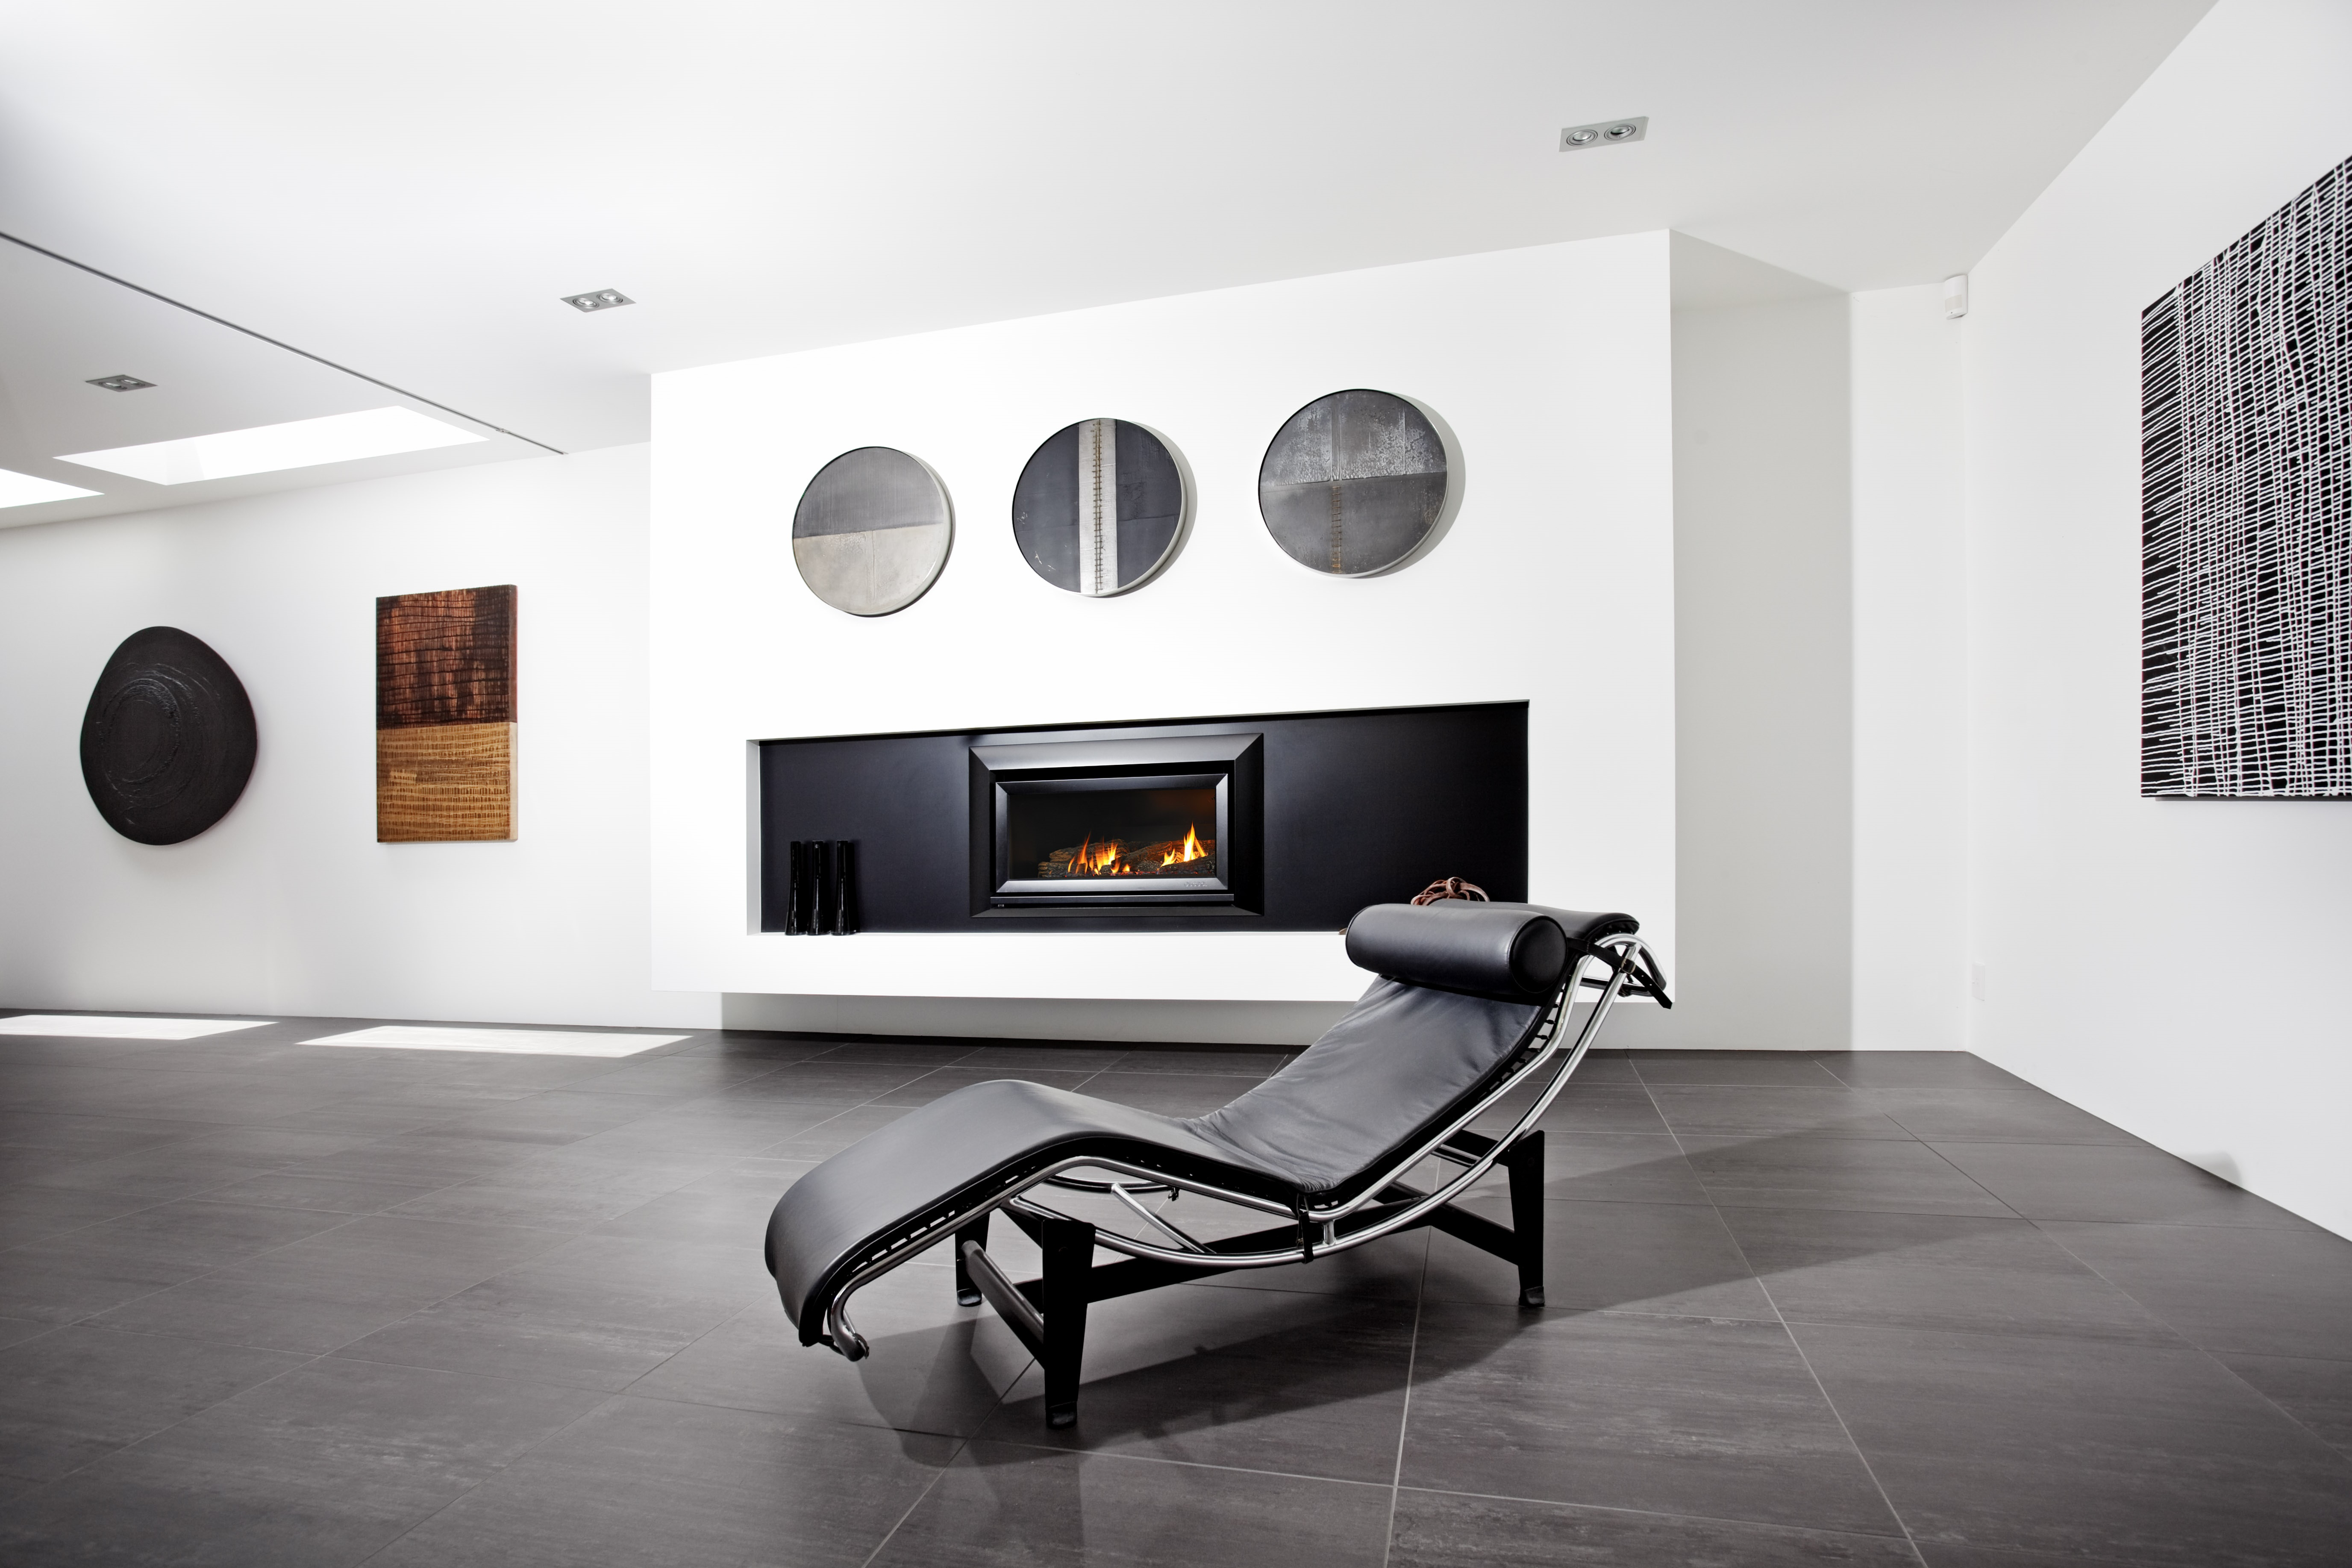 Efficiency of gas fireplace - Efficiency Of Gas Fireplace 43